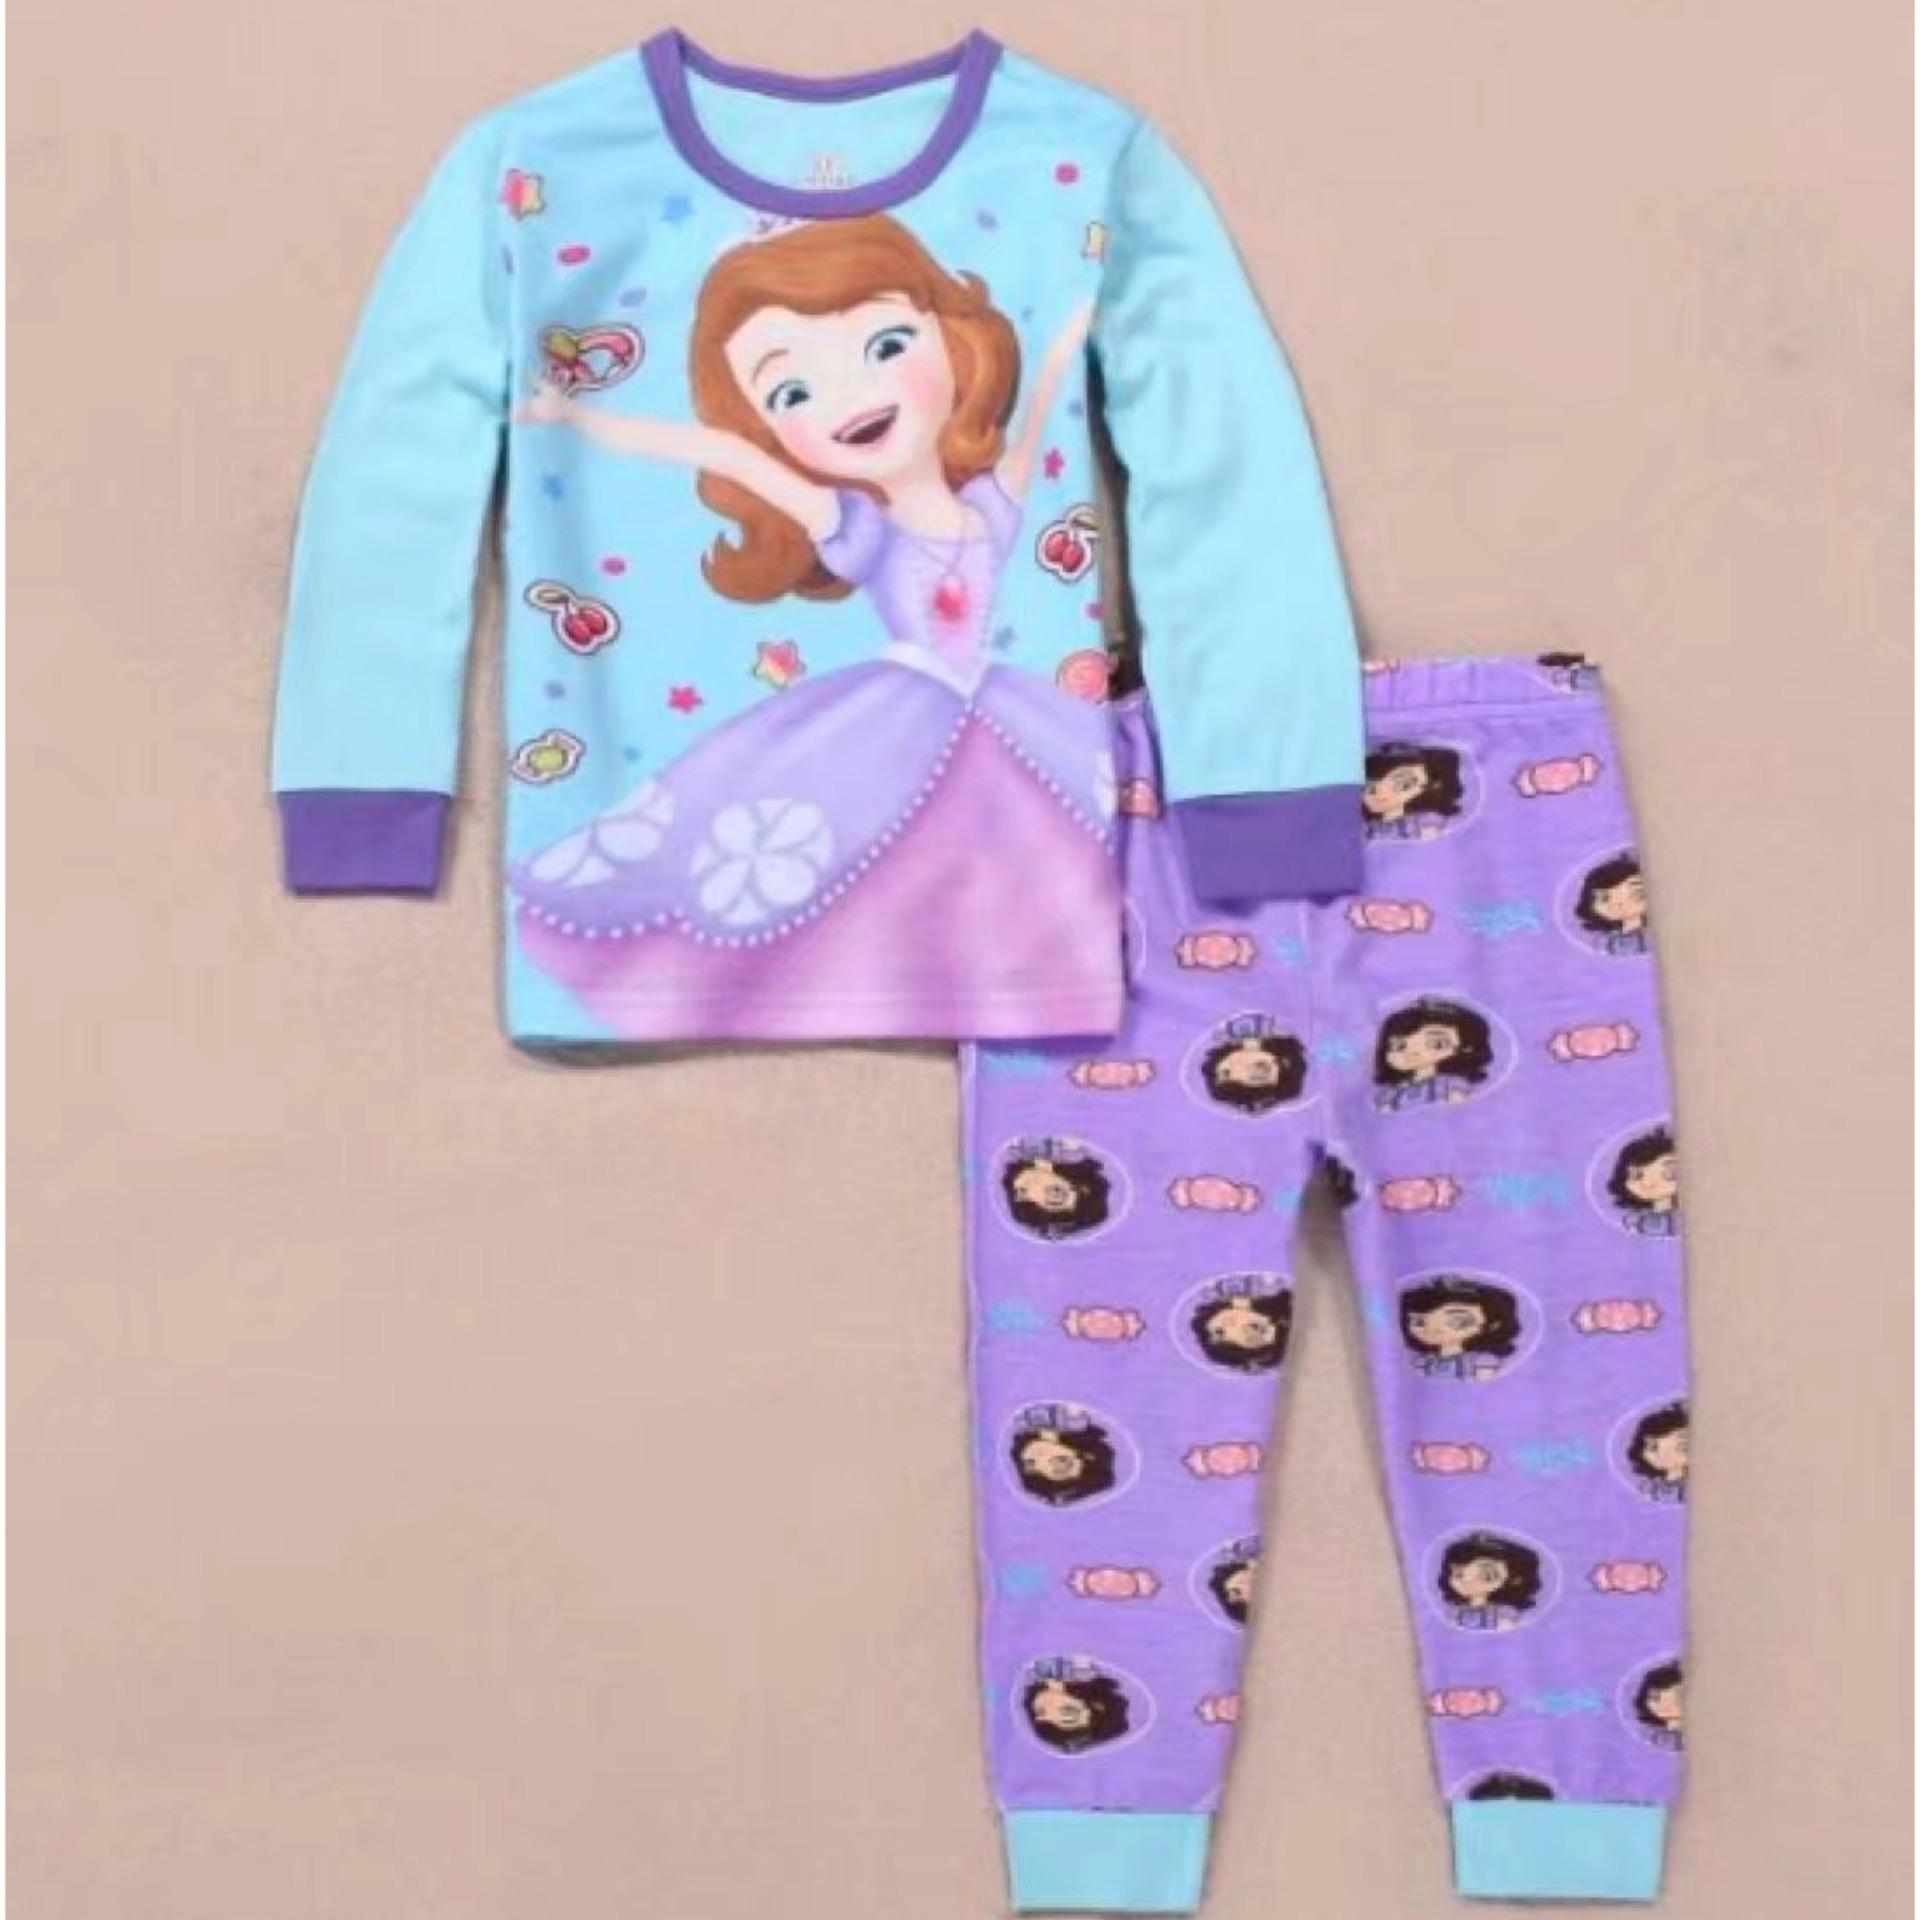 Price Comparison For Kids Clothes Sofia Paw Patrol Peppa Pig Pajamas Frozen Sleepwear Elsa Anna Princess Pajamas